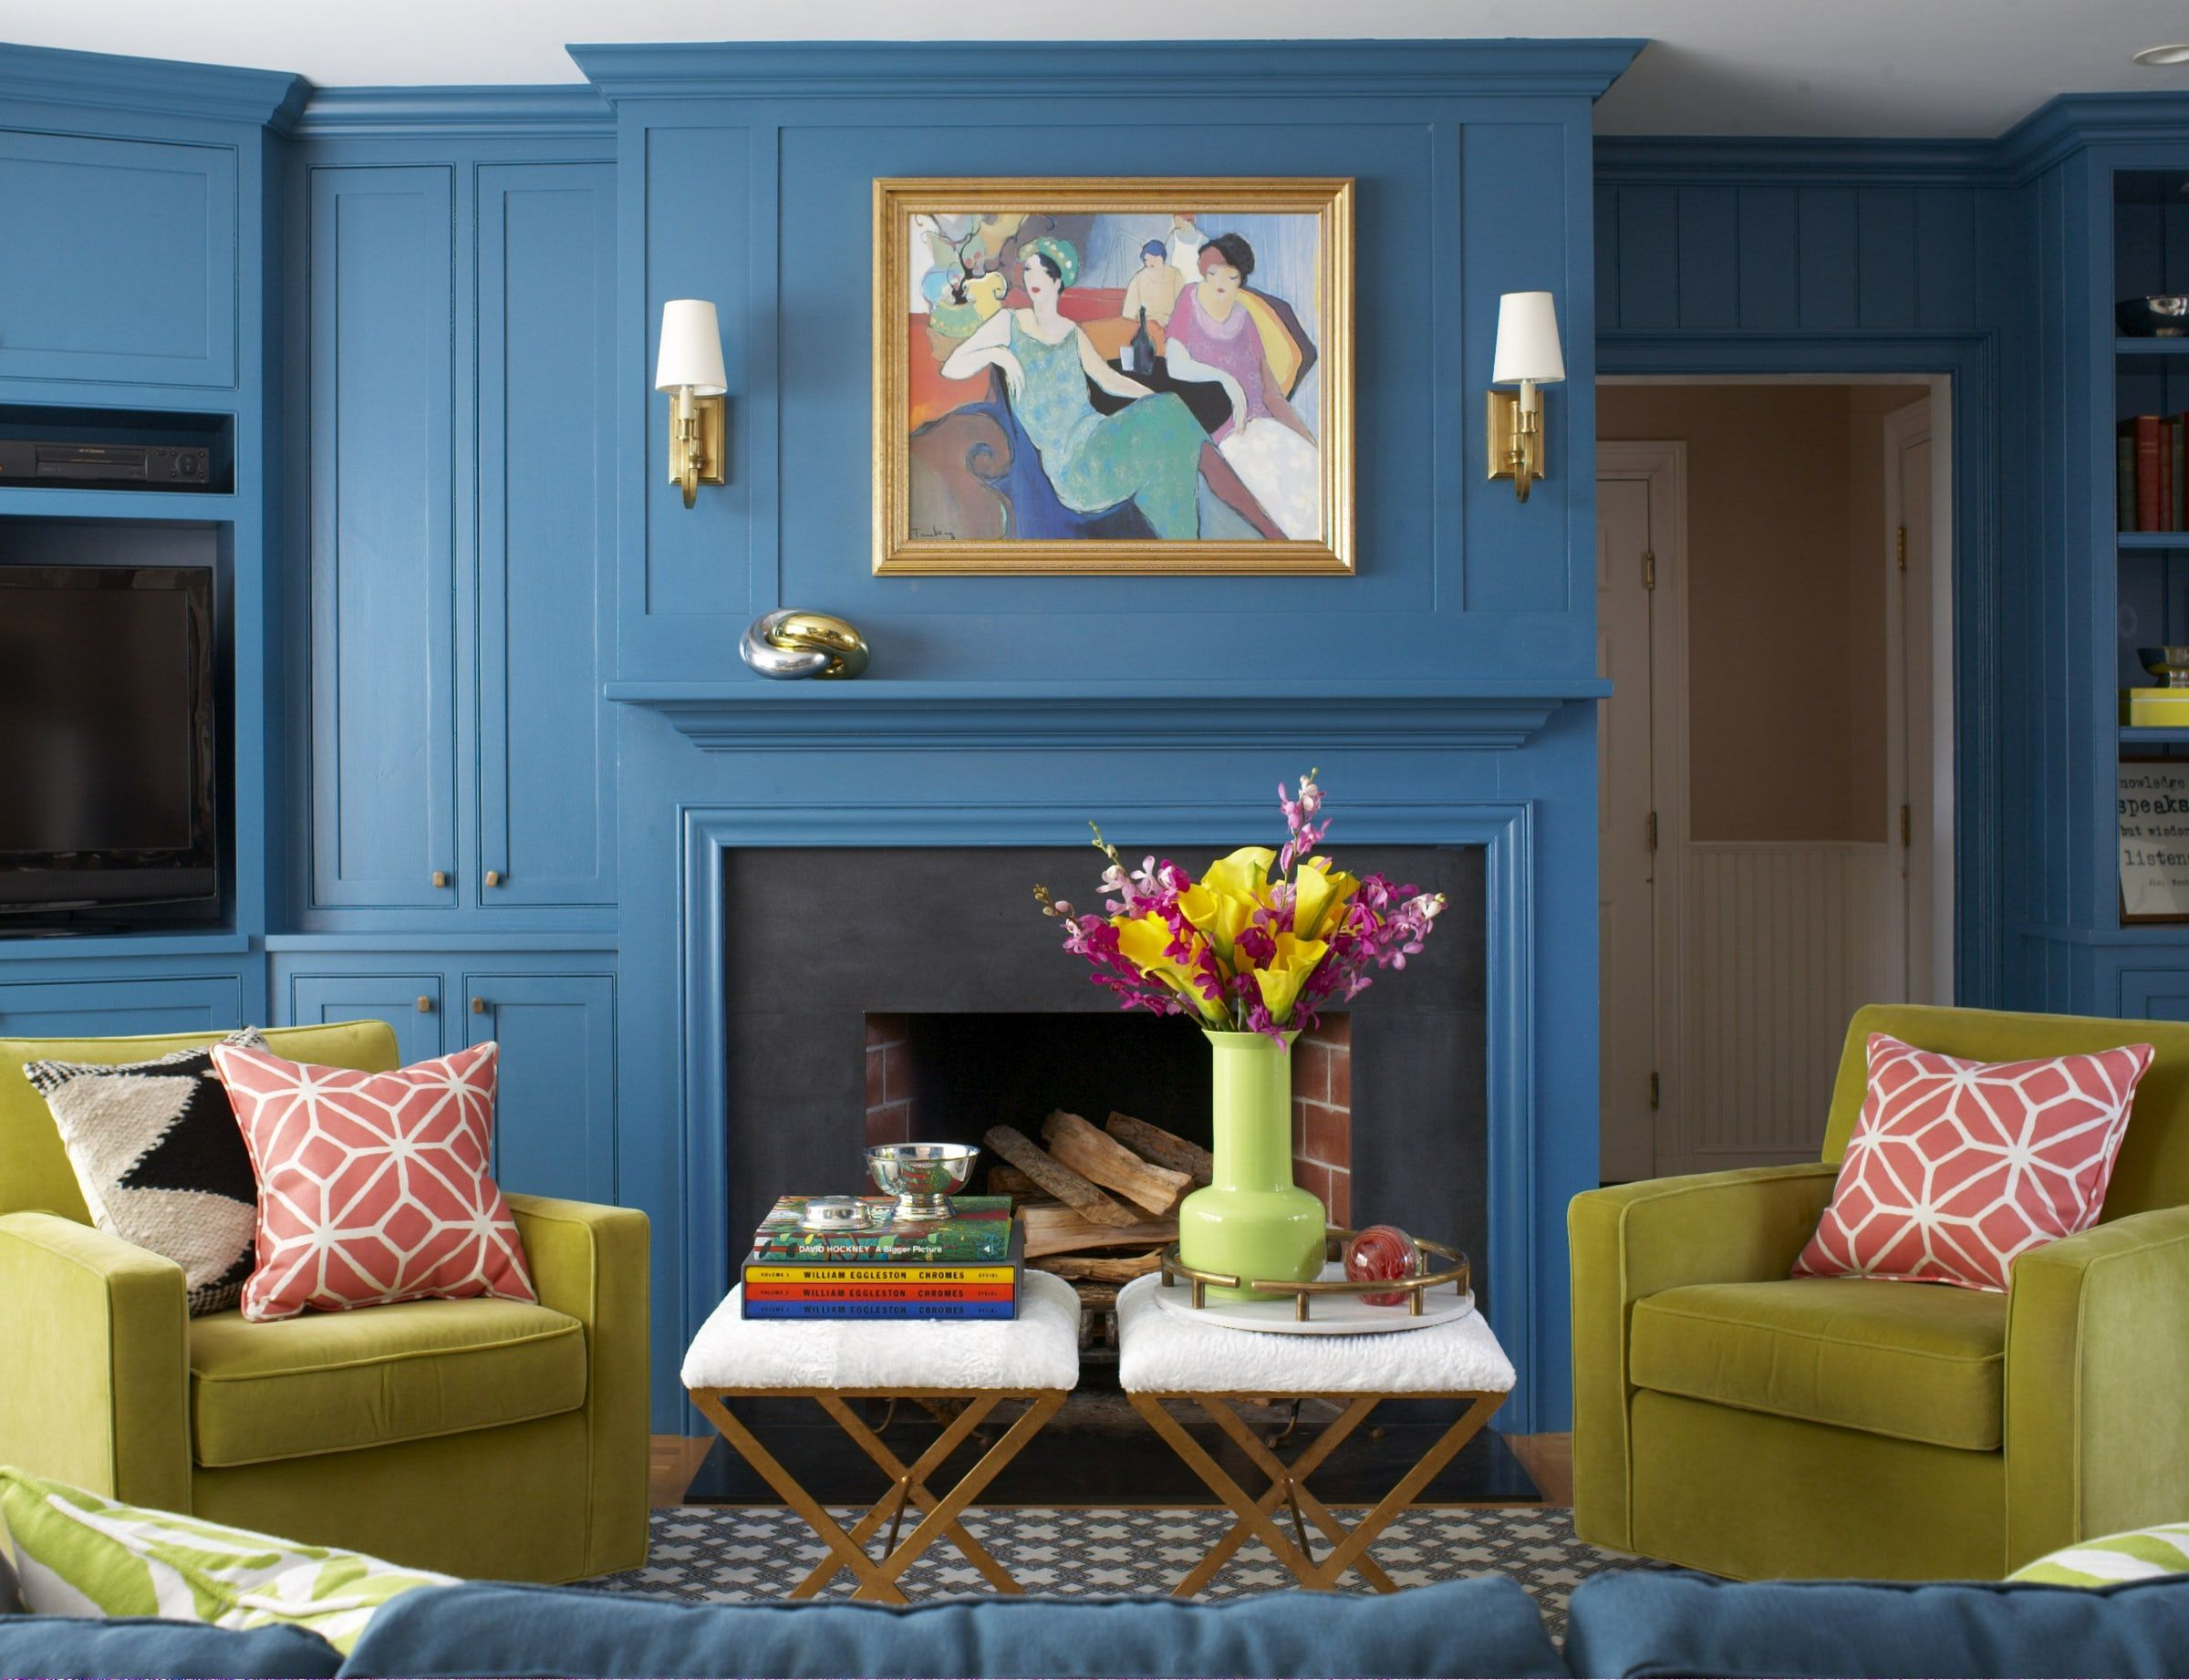 living room wall colour designs modern family ideas 40 vibrant color how to decorate with bright colors gorgeous rooms full of daring